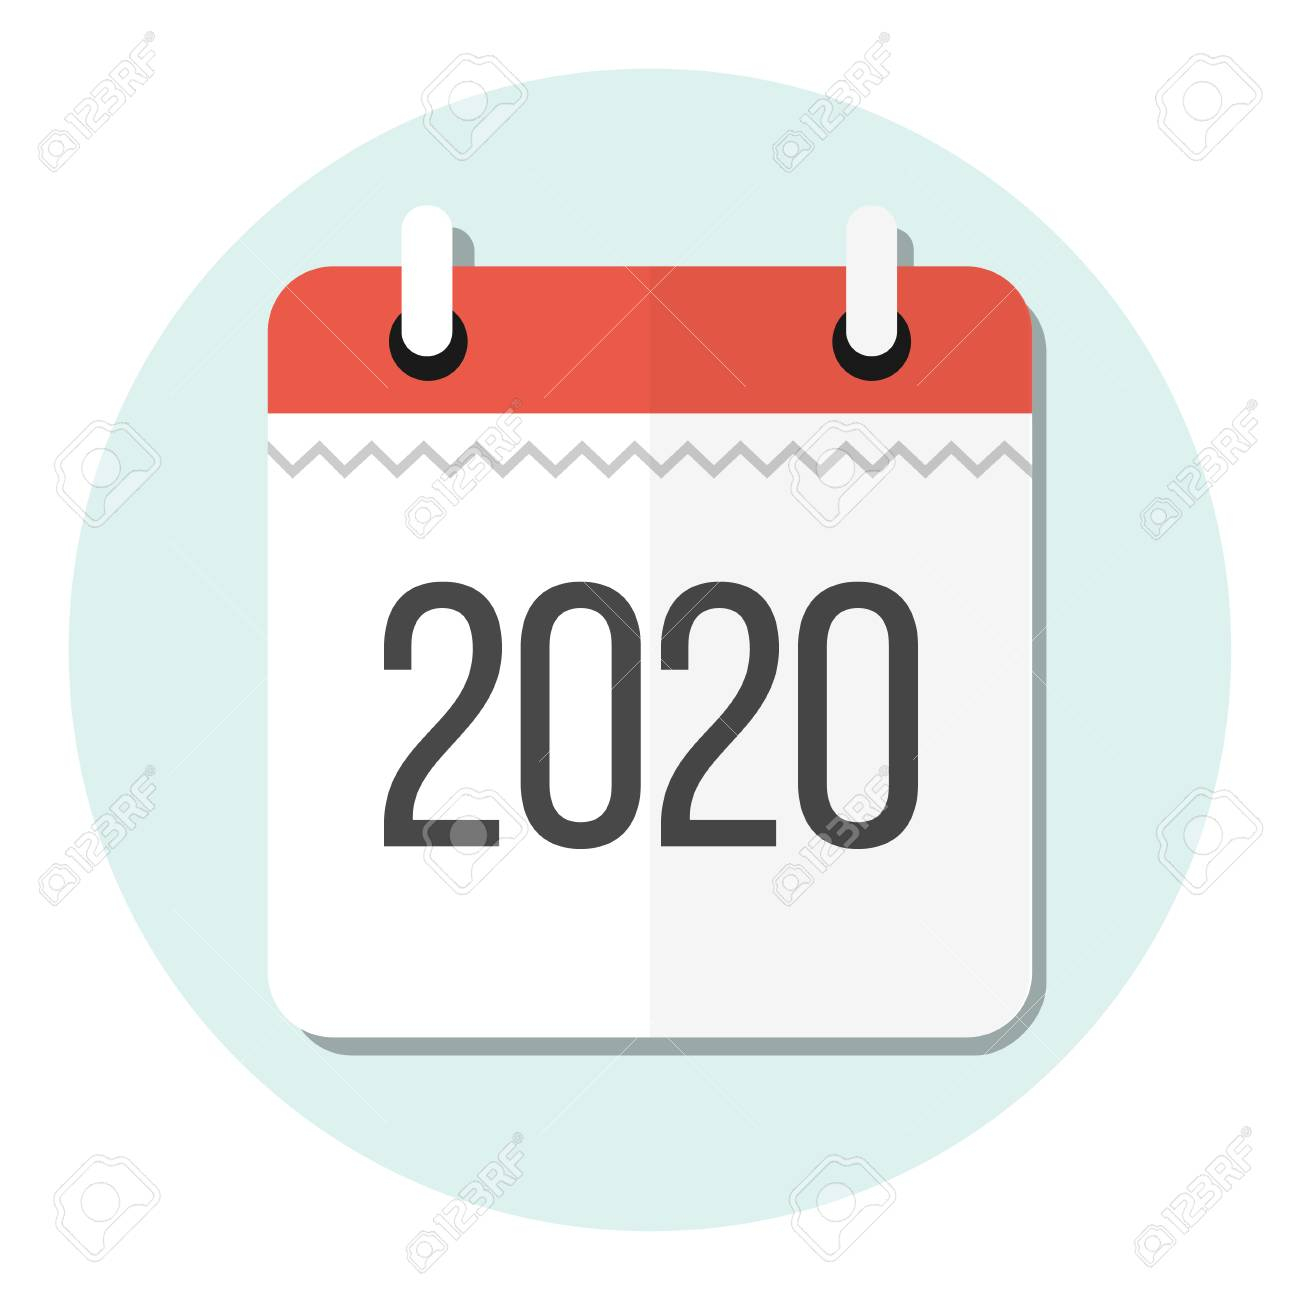 Calendar 2020 Flat Design Icon with regard to Calendar Icon Jpg